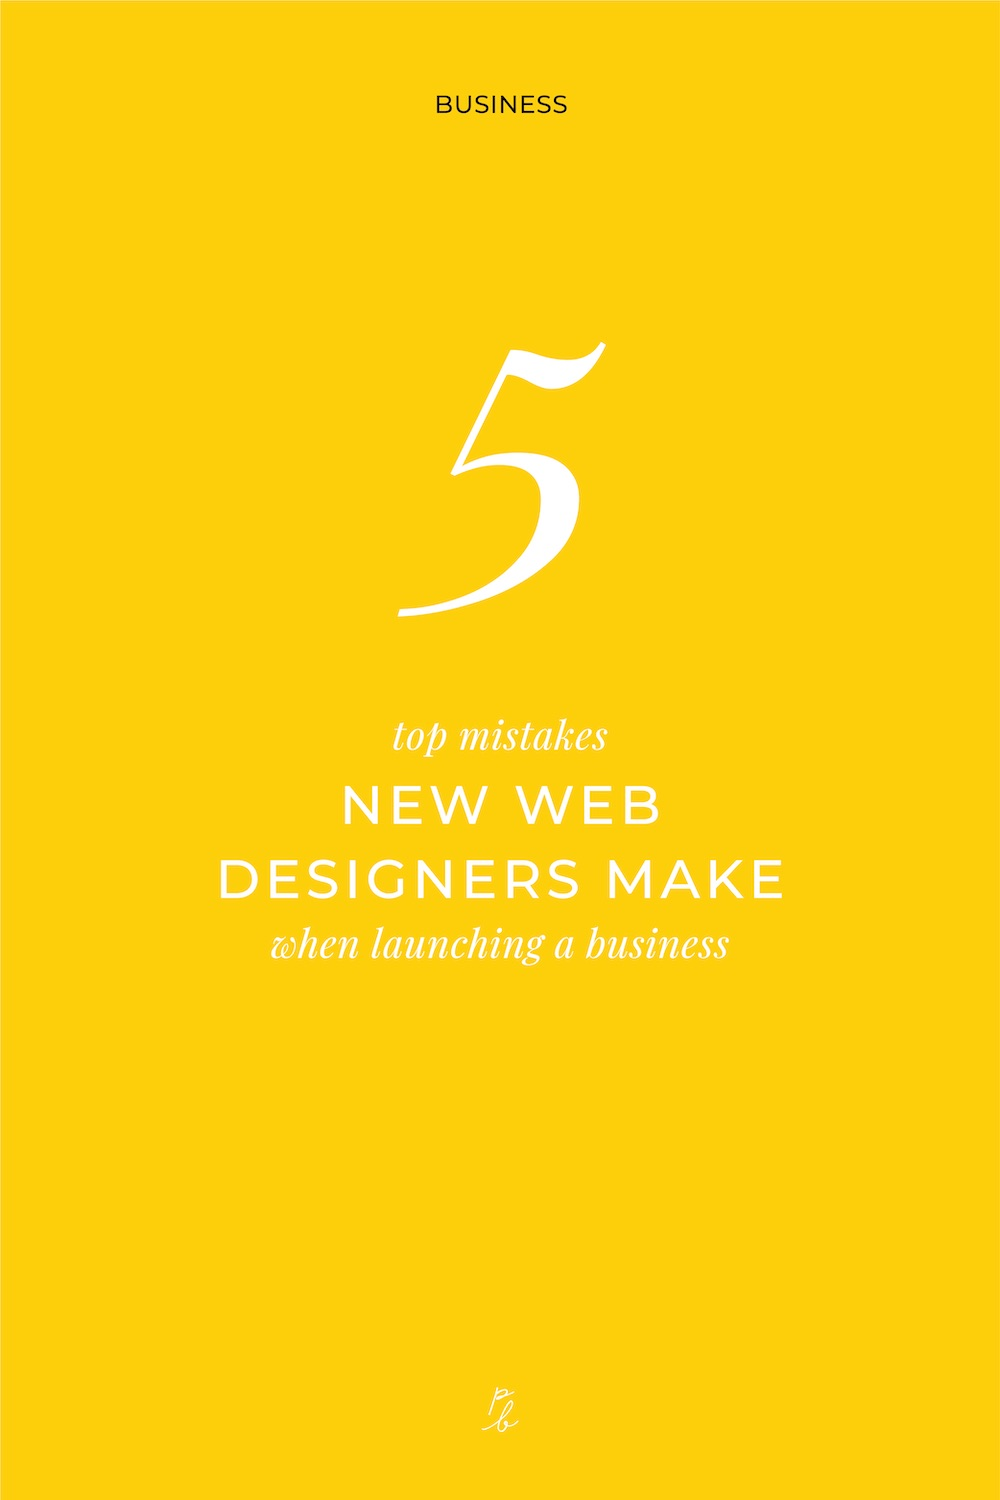 5-5 top mistakes new web designers make when launching a business.jpg